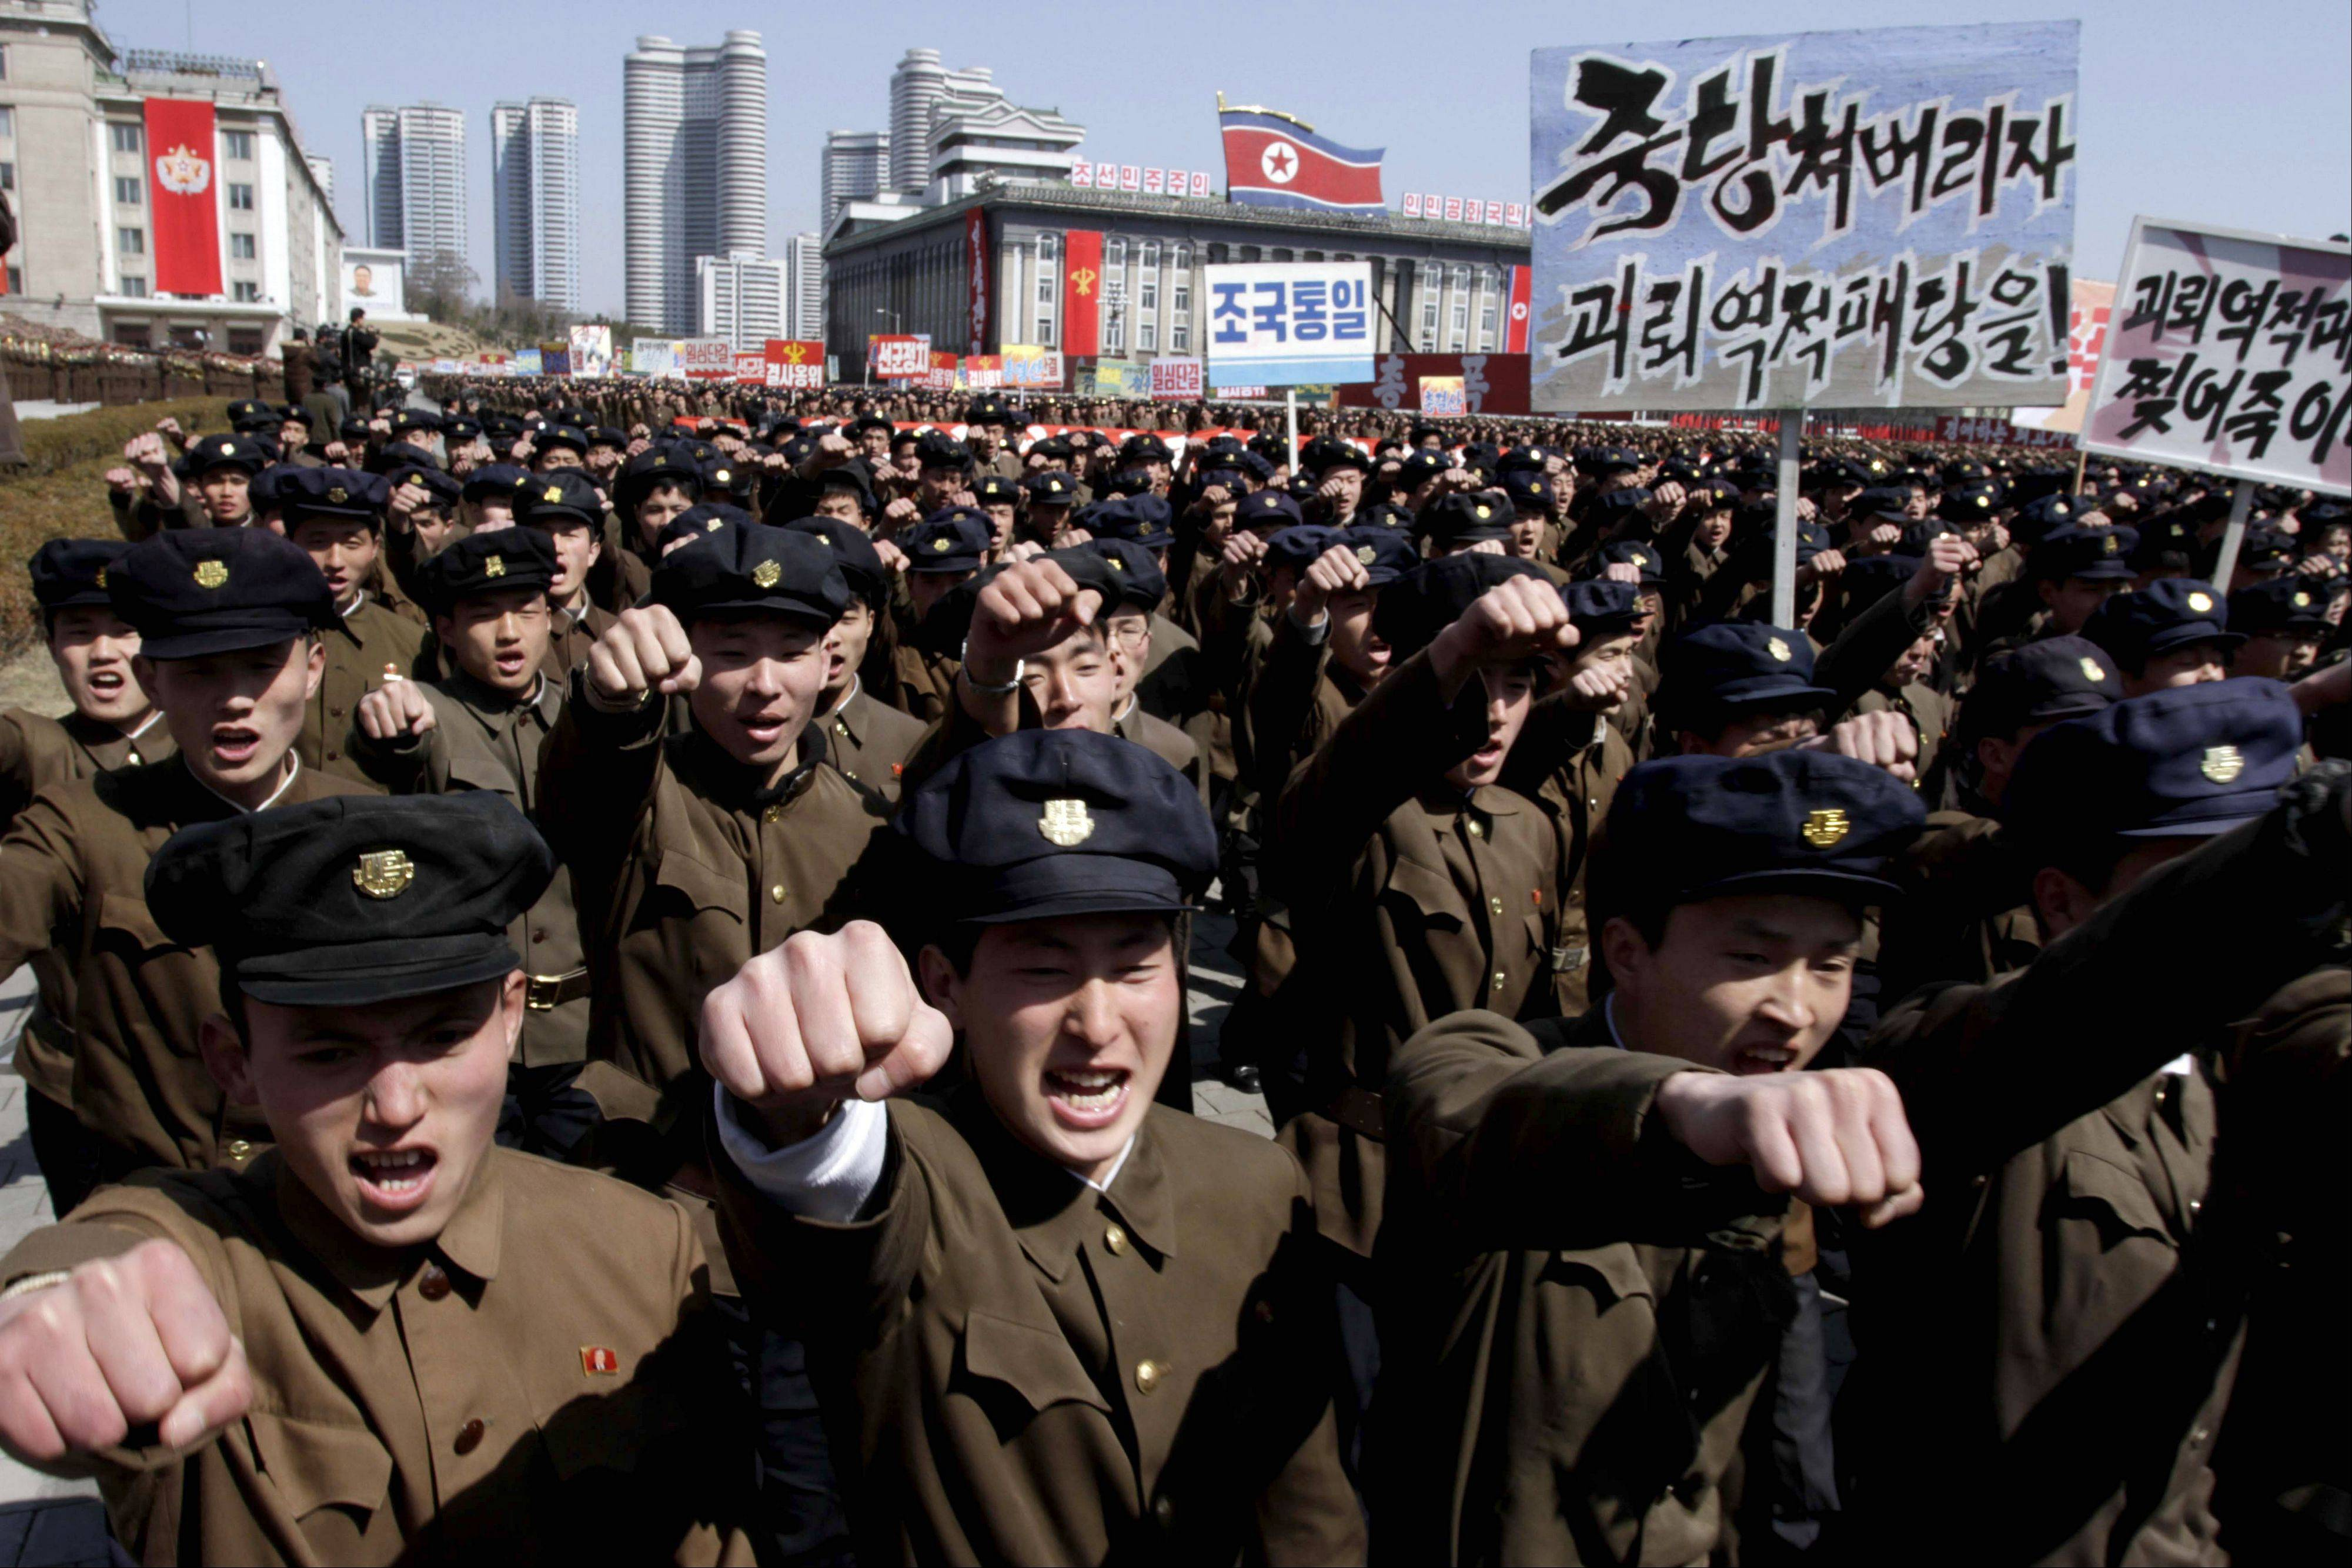 "University students punch the air Friday as they march through Kim Il Sung Square in downtown Pyongyang, North Korea. Tens of thousands of North Koreans turned out for the mass rally at the main square in Pyongyang in support of their leader Kim Jong Un's call to arms. Placards read: ""Let's crush the puppet traitor group"" and ""Let's rip the puppet traitors to death!"""